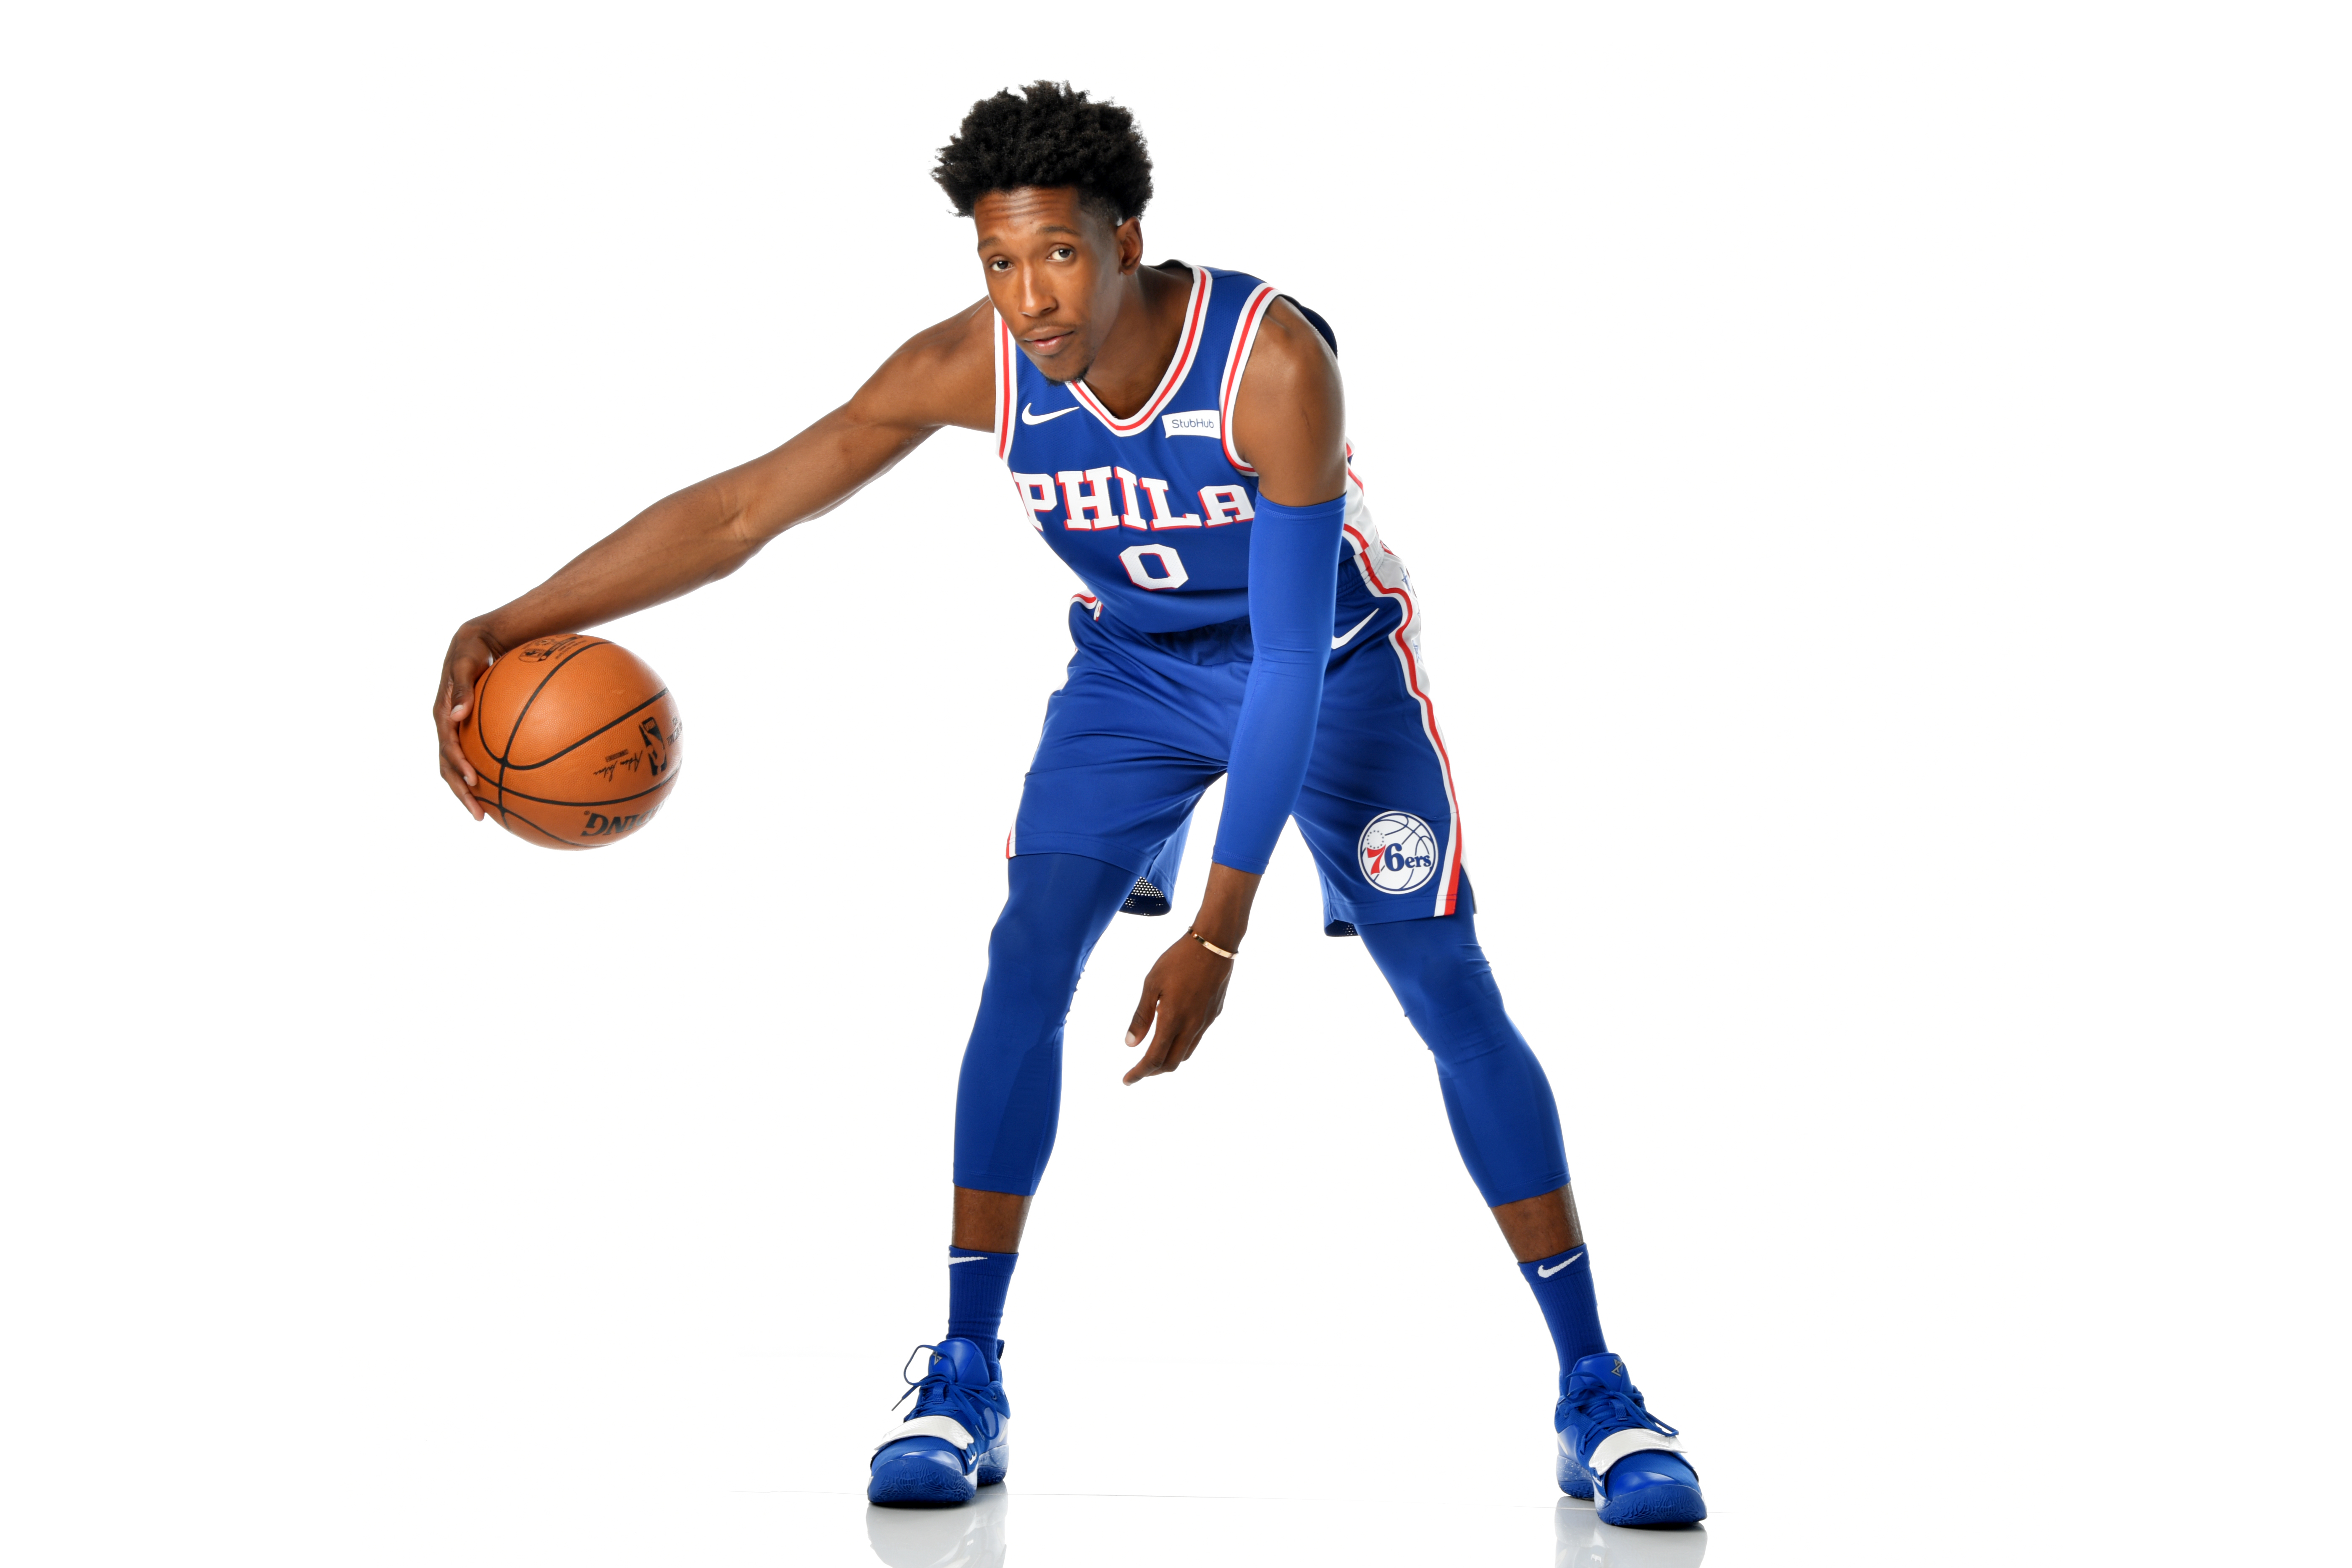 Philadelphia 76ers Player Portraits